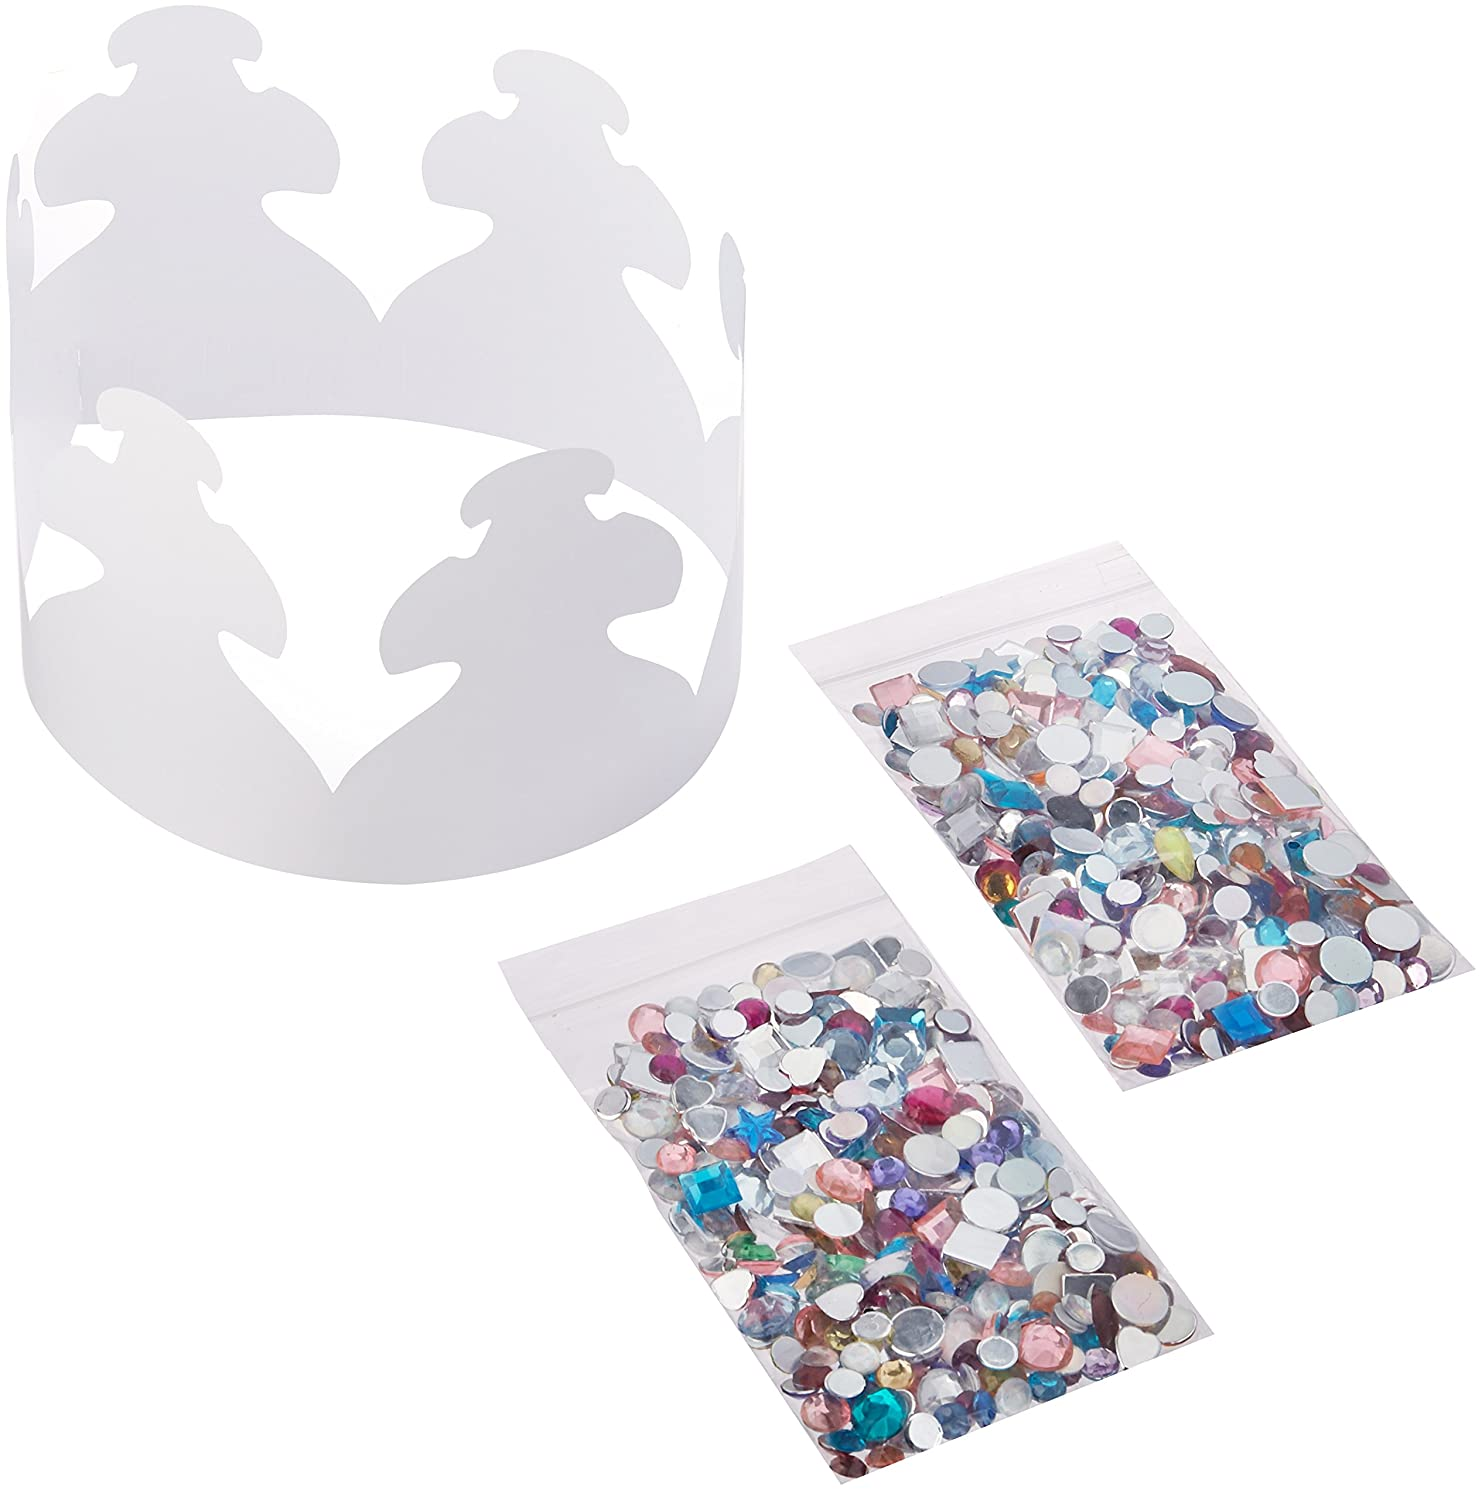 Decorating Paper Hat Kit with Approximately 600 Gemstones Hygloss Products DIY Party Crown Kits /24 Party Crownsper Pack